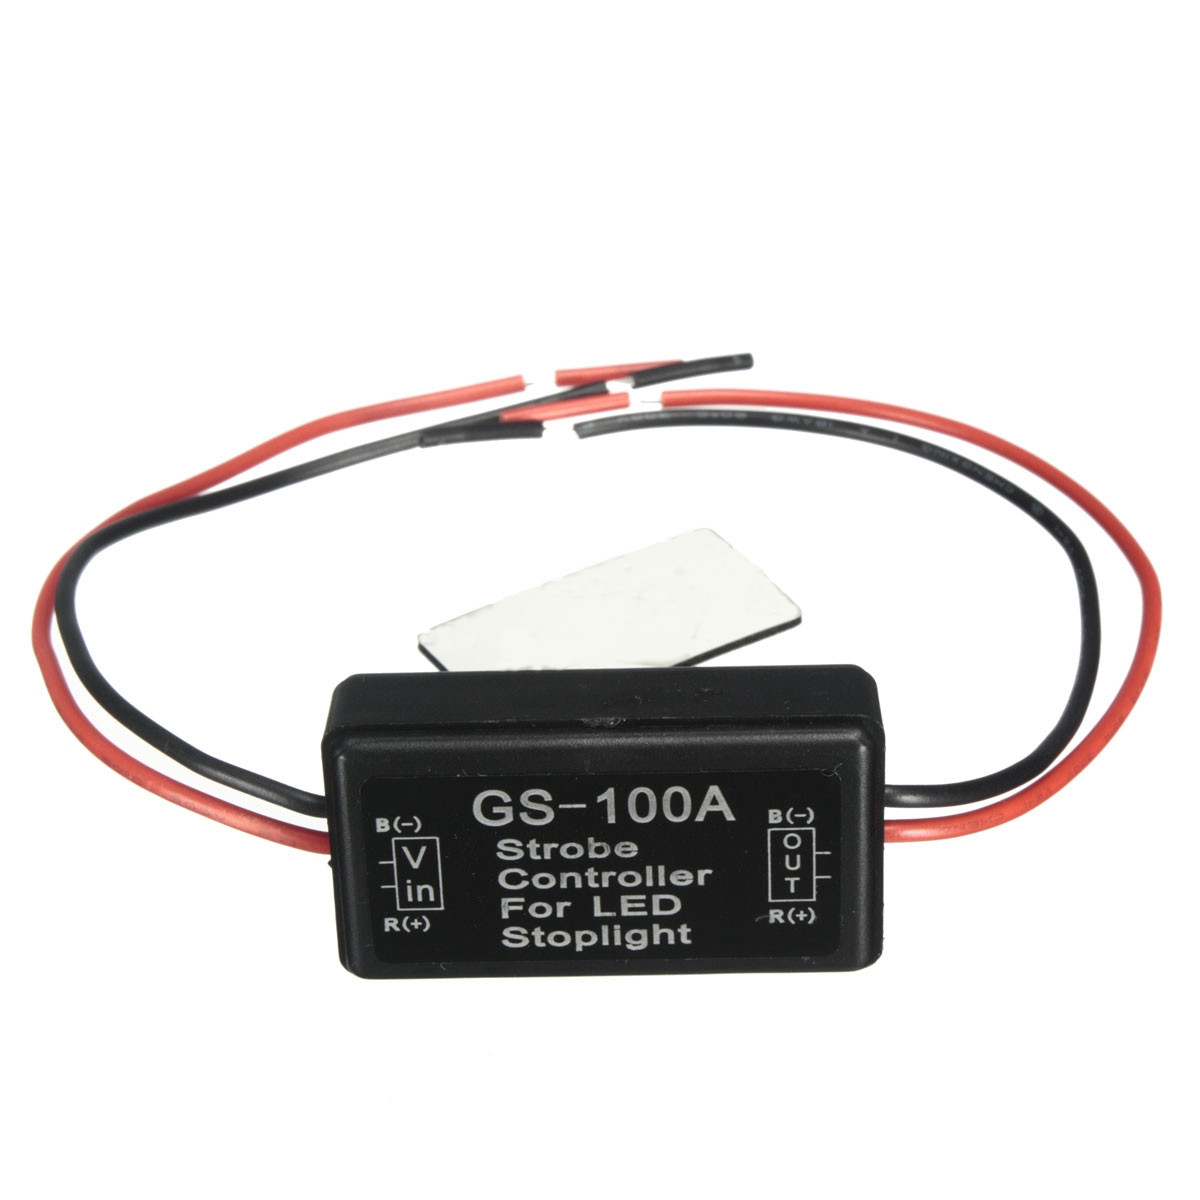 2017 Brand New GS-100A Universal Car 12V LED Brake Stop Light Strobe Controller Flash Module